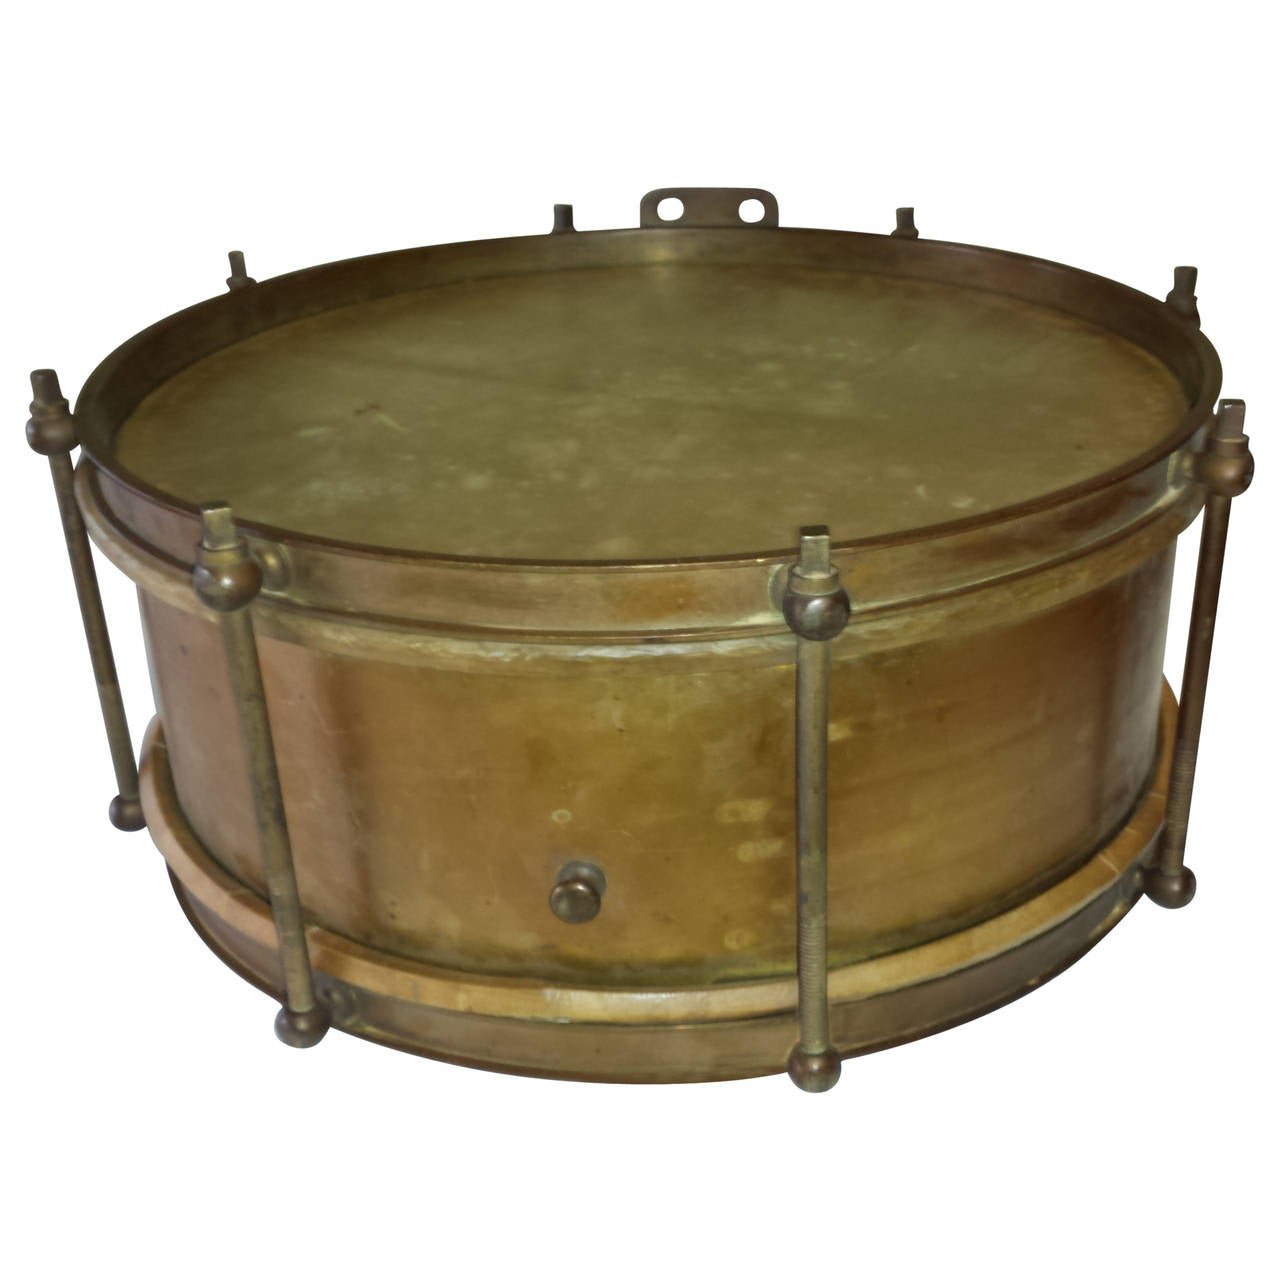 Brass military or marching band snare drum circa 1900 for for Classic house drums